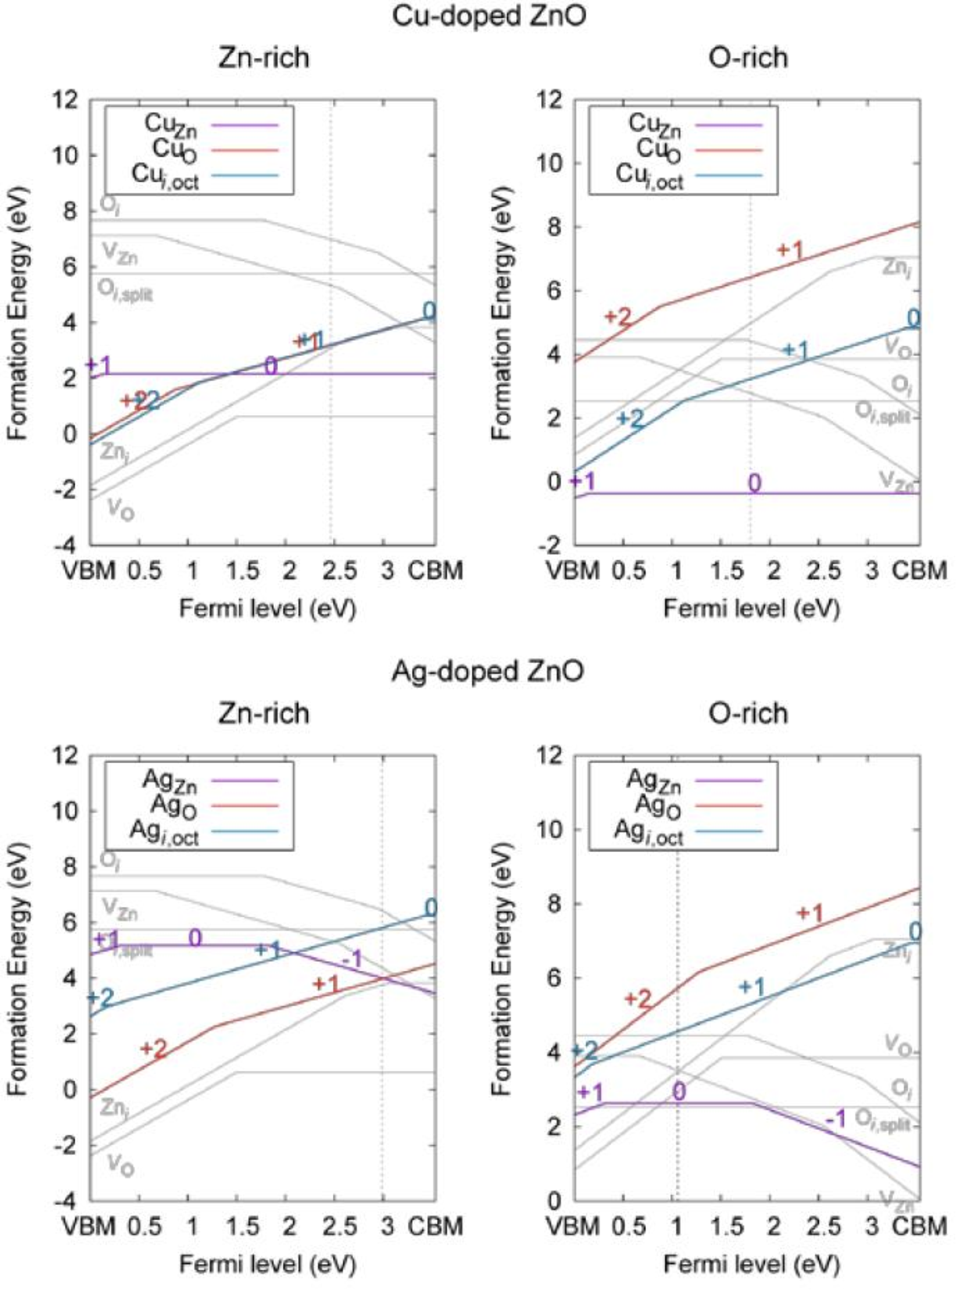 Figure 7: Formation energies of various intrinsic as well as cooper and silver extrinsic defects in ZnO over a range of fermi levels for both Zn and O rich conditions (K. Yim, 2017)